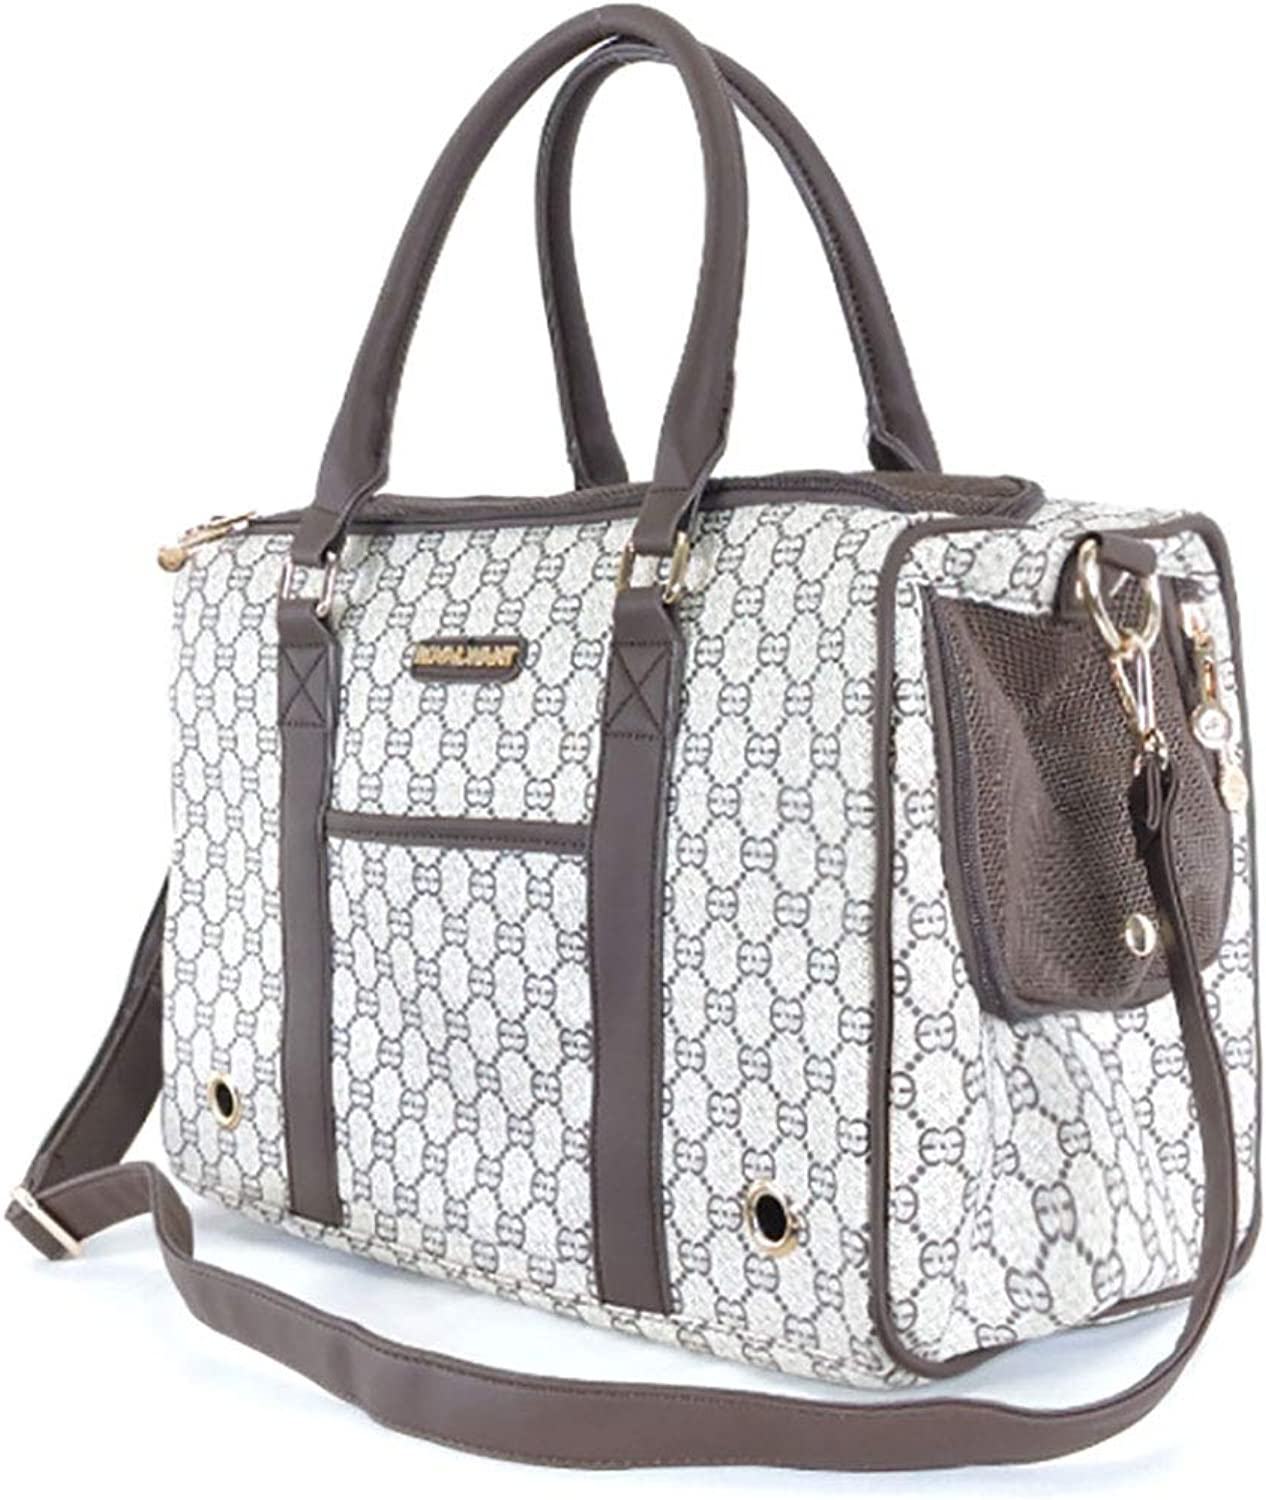 c2eca652c1 Fashion Pet Carrier Cats and Dogs Outing Portable Breathable Handbag Pet  Tote Dog Purse for Travel